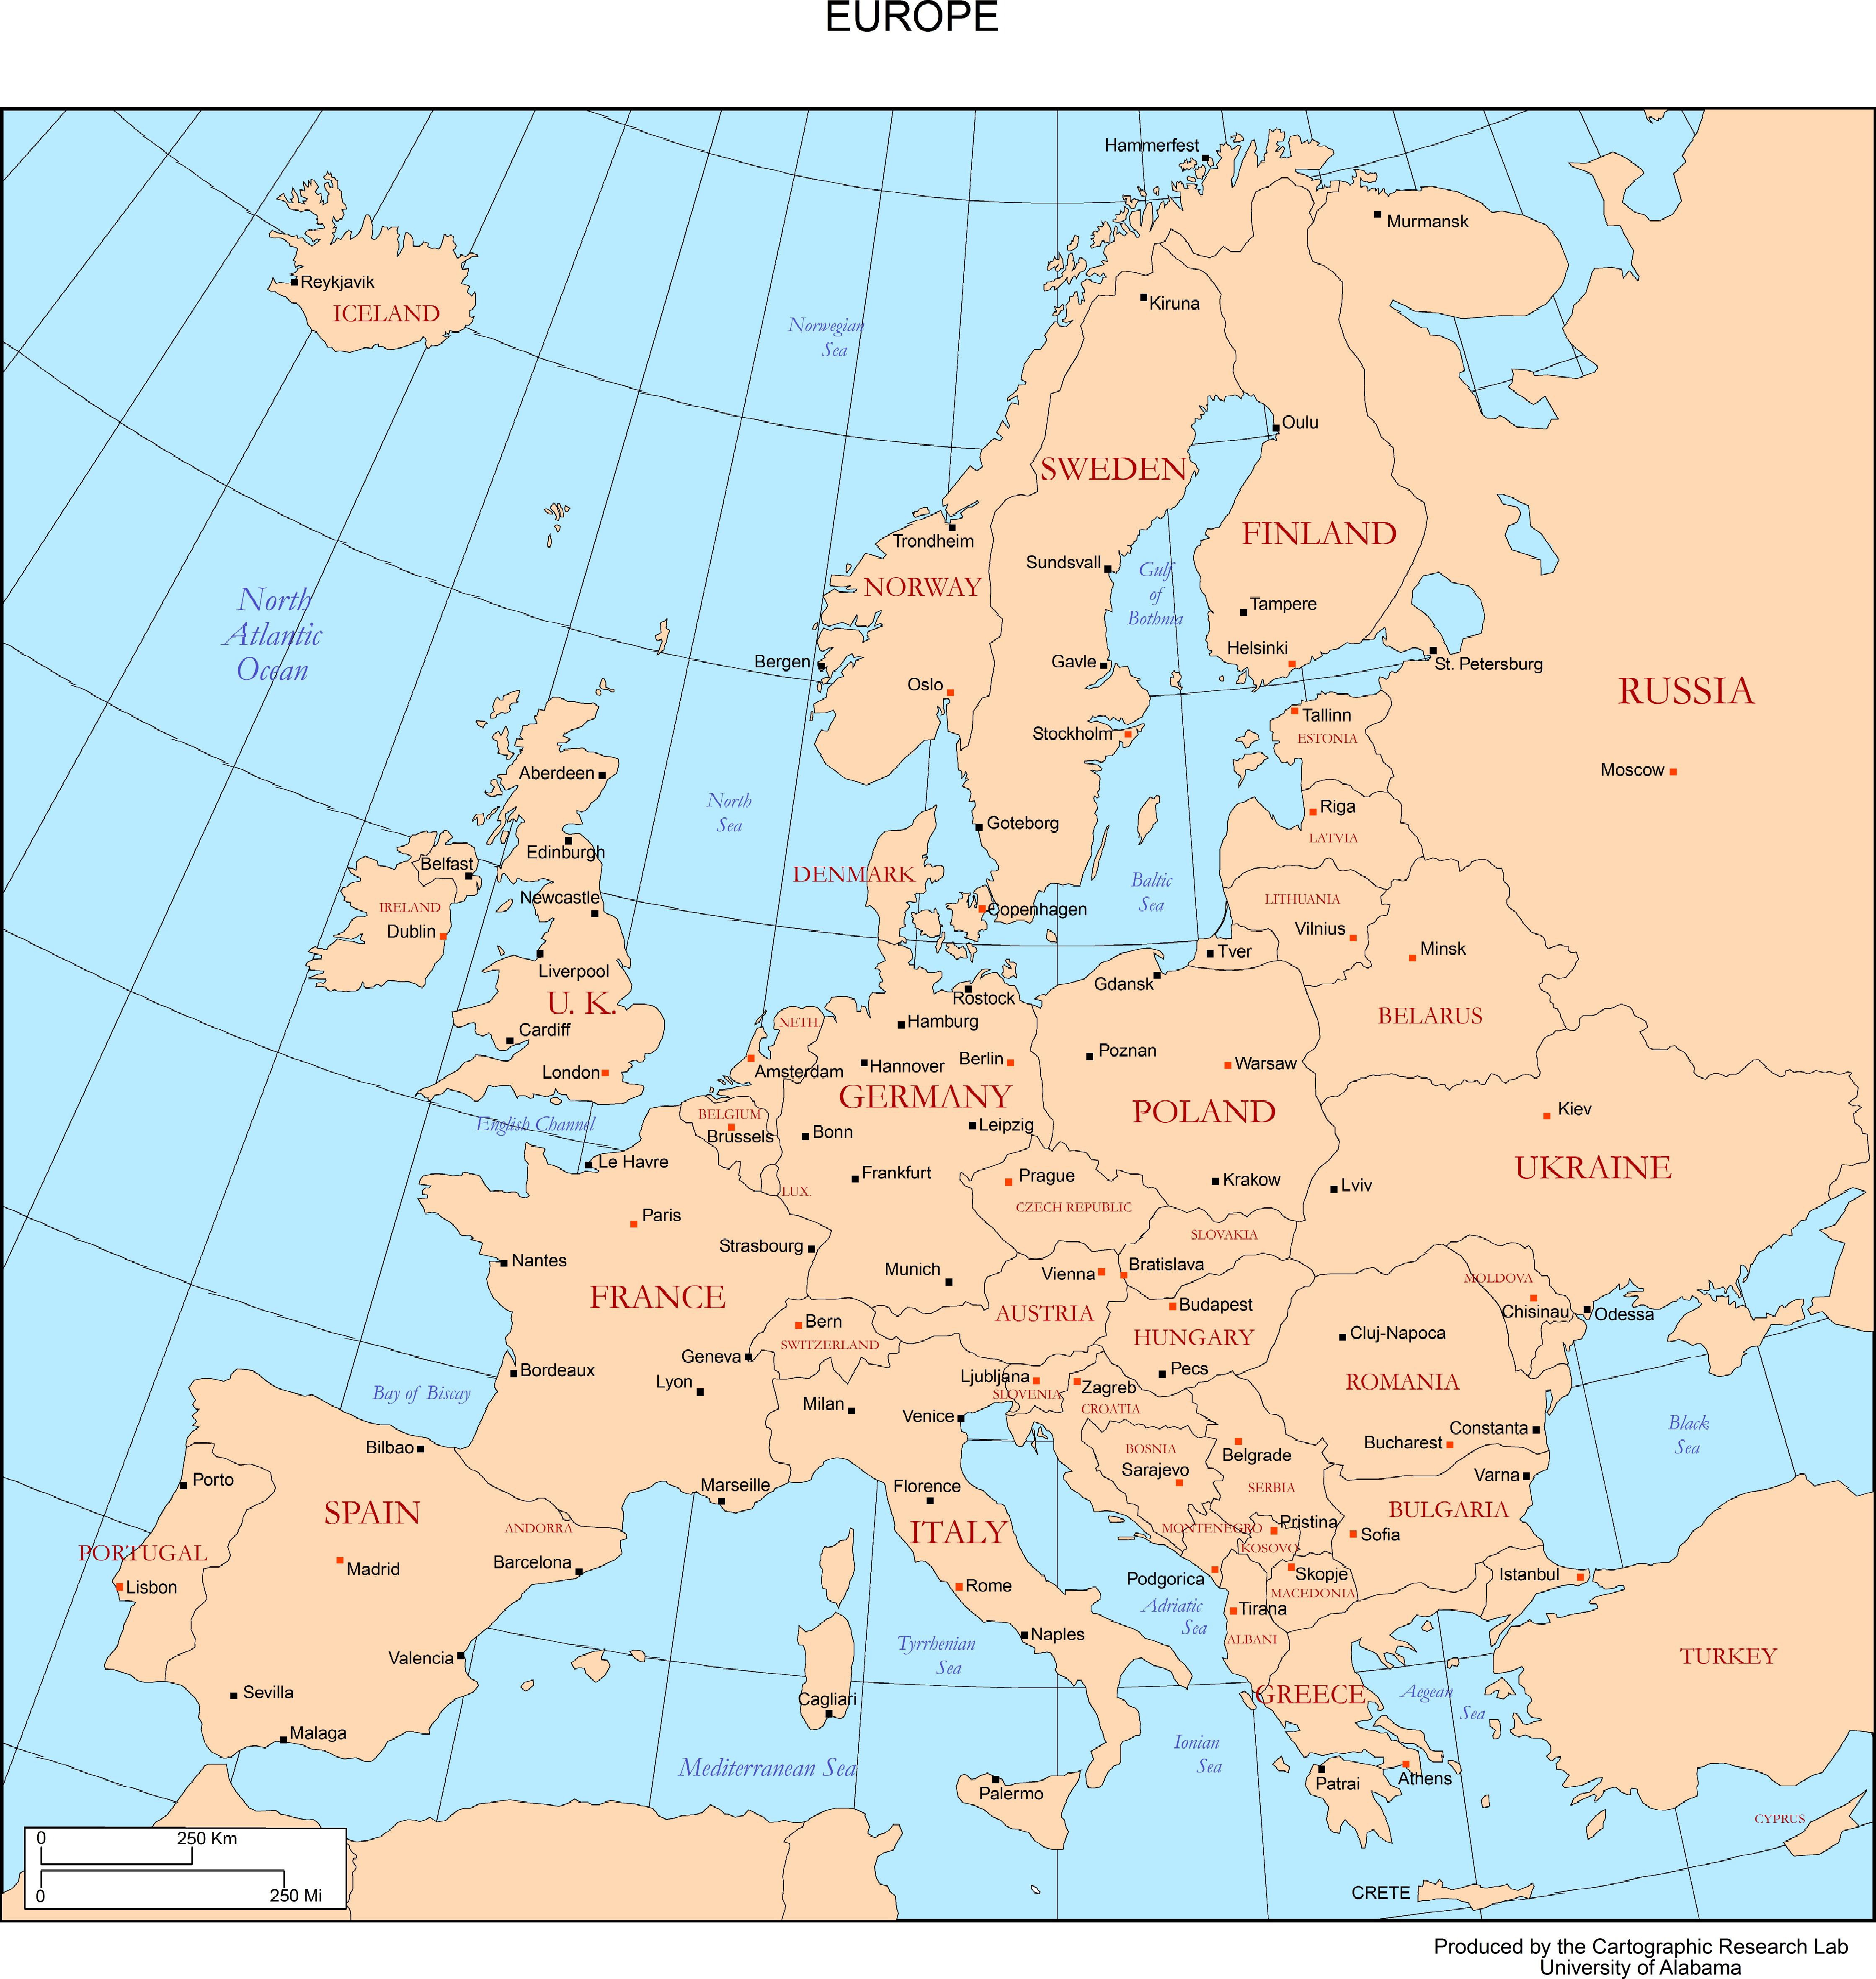 Europe Map With Capitals on Europe Map Major Cities